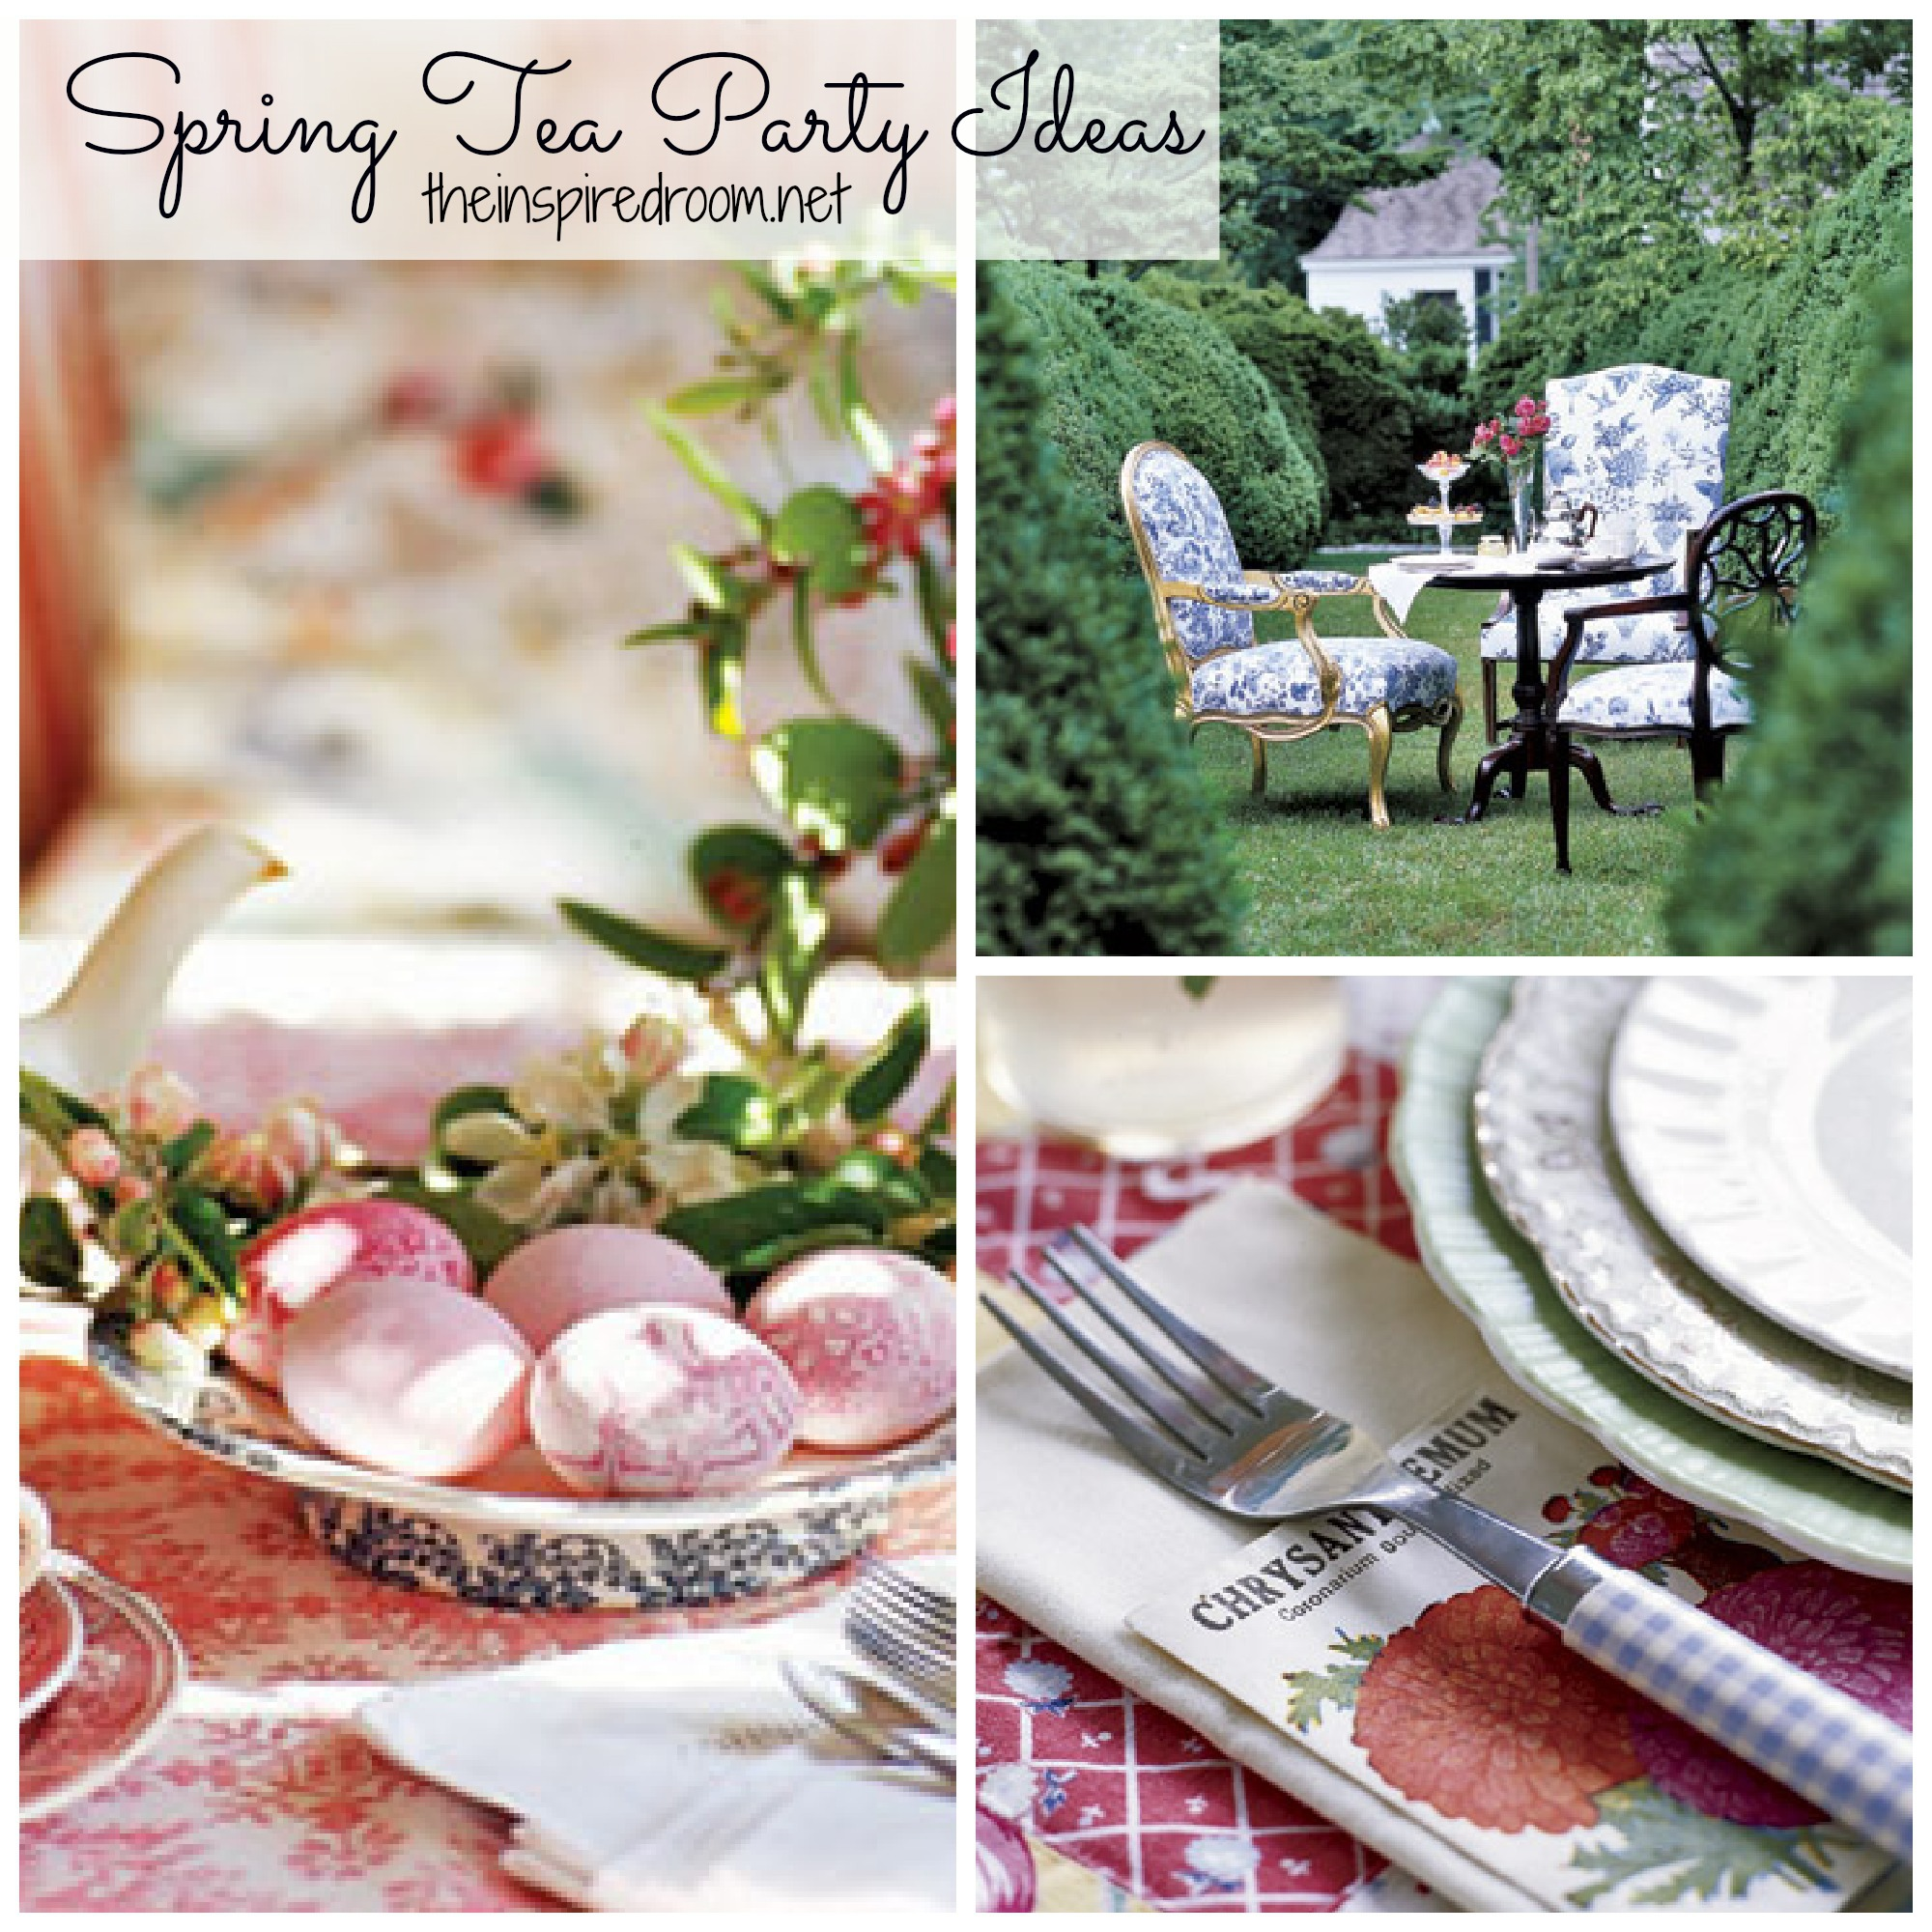 Spring Time Tea Parties Sweet Ideas The Inspired Room